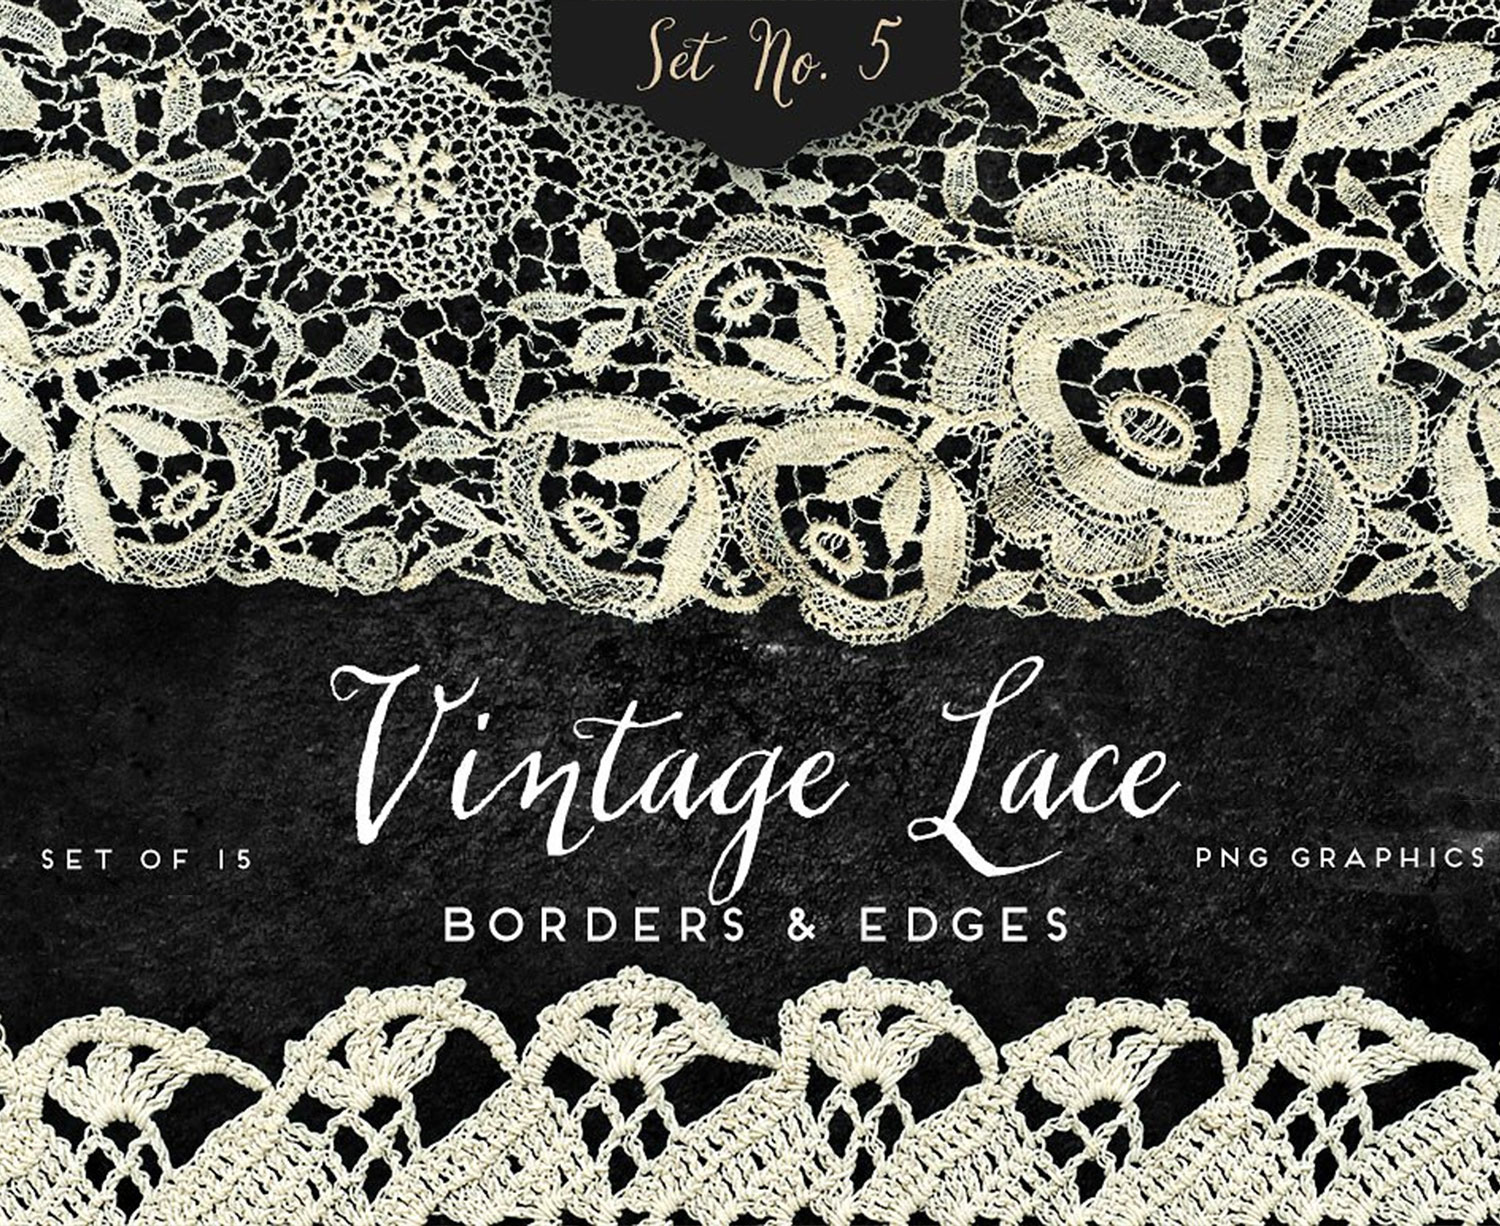 lace-5-top-image